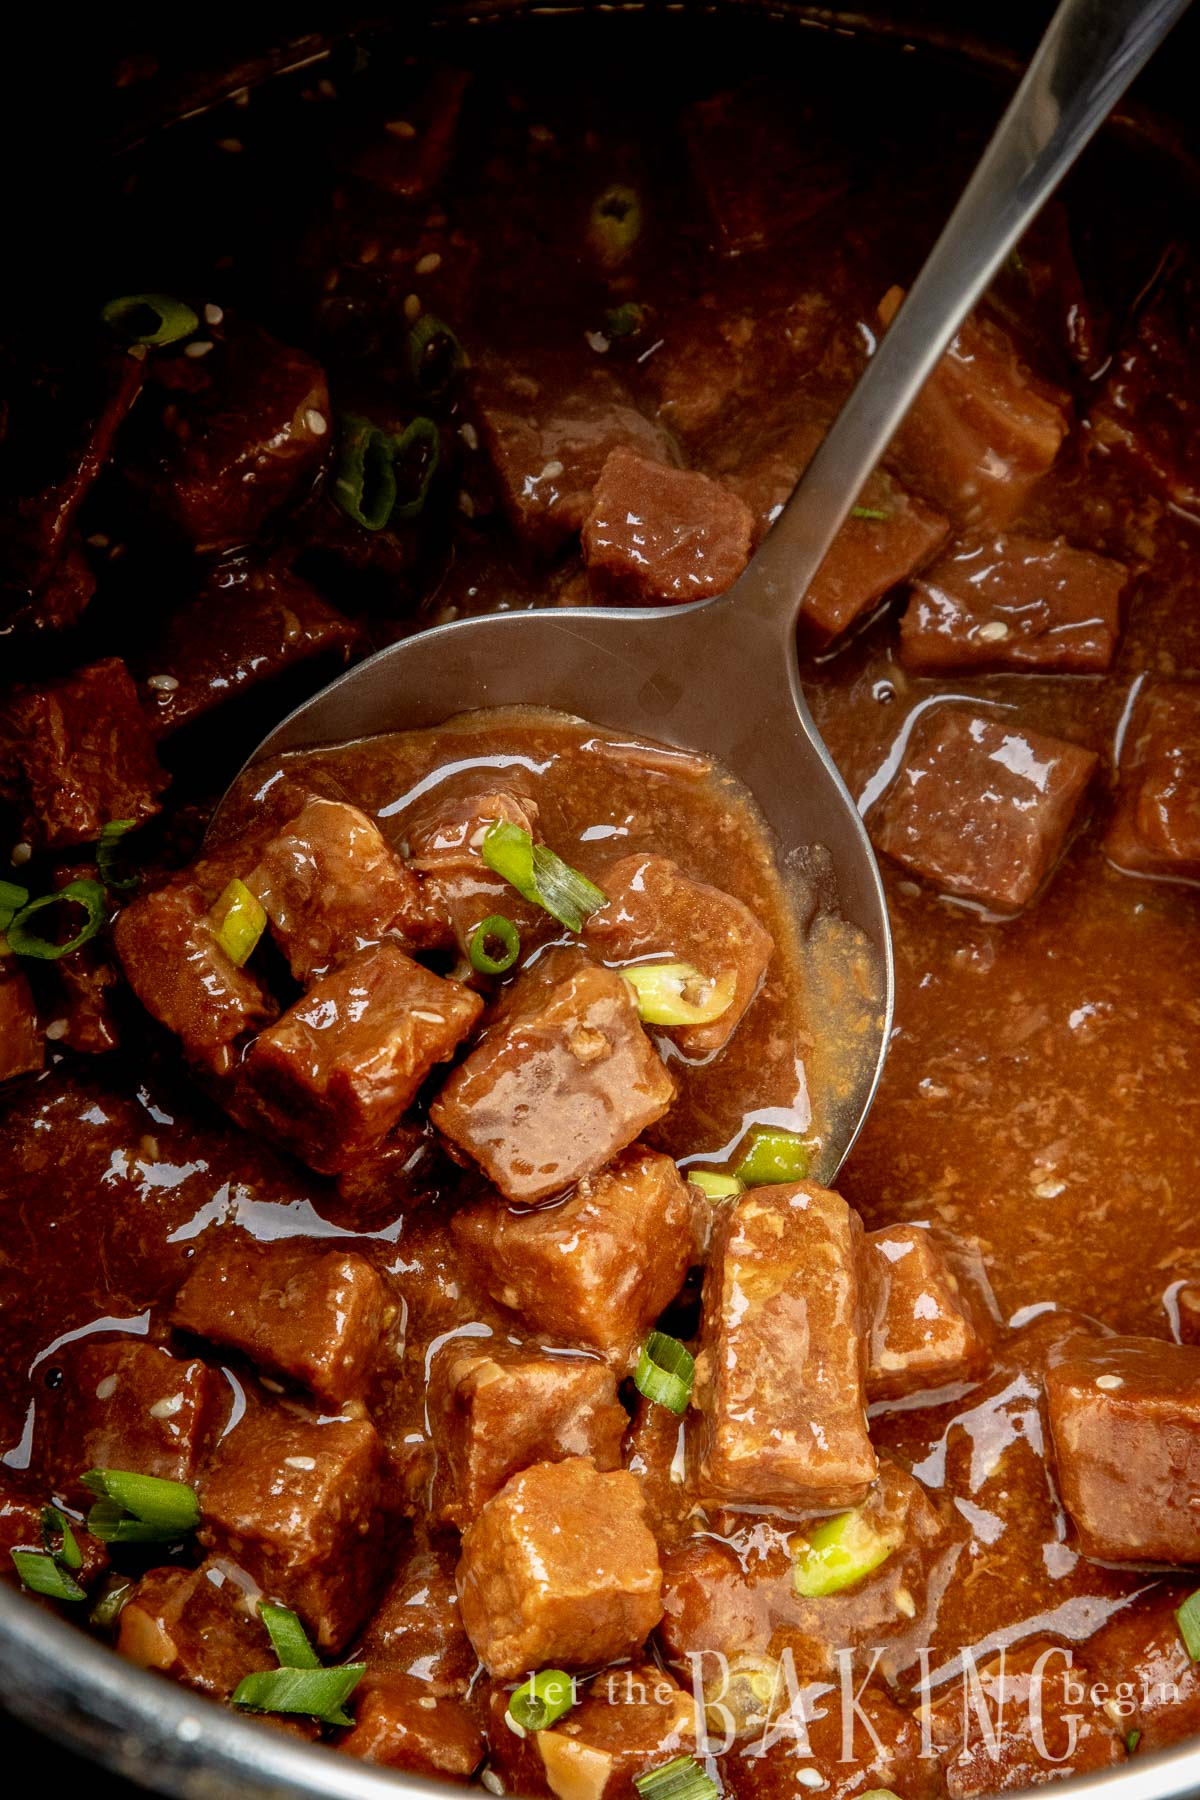 Quick and Easy Korean Beef is made by tossing all ingredients for the sauce together, then adding the cubed beef and cooking together in an Instant Pot until soft. This Asian style beef recipe is perfect for busy weeknight dinner when all you want is eat, not fuss over the stove.